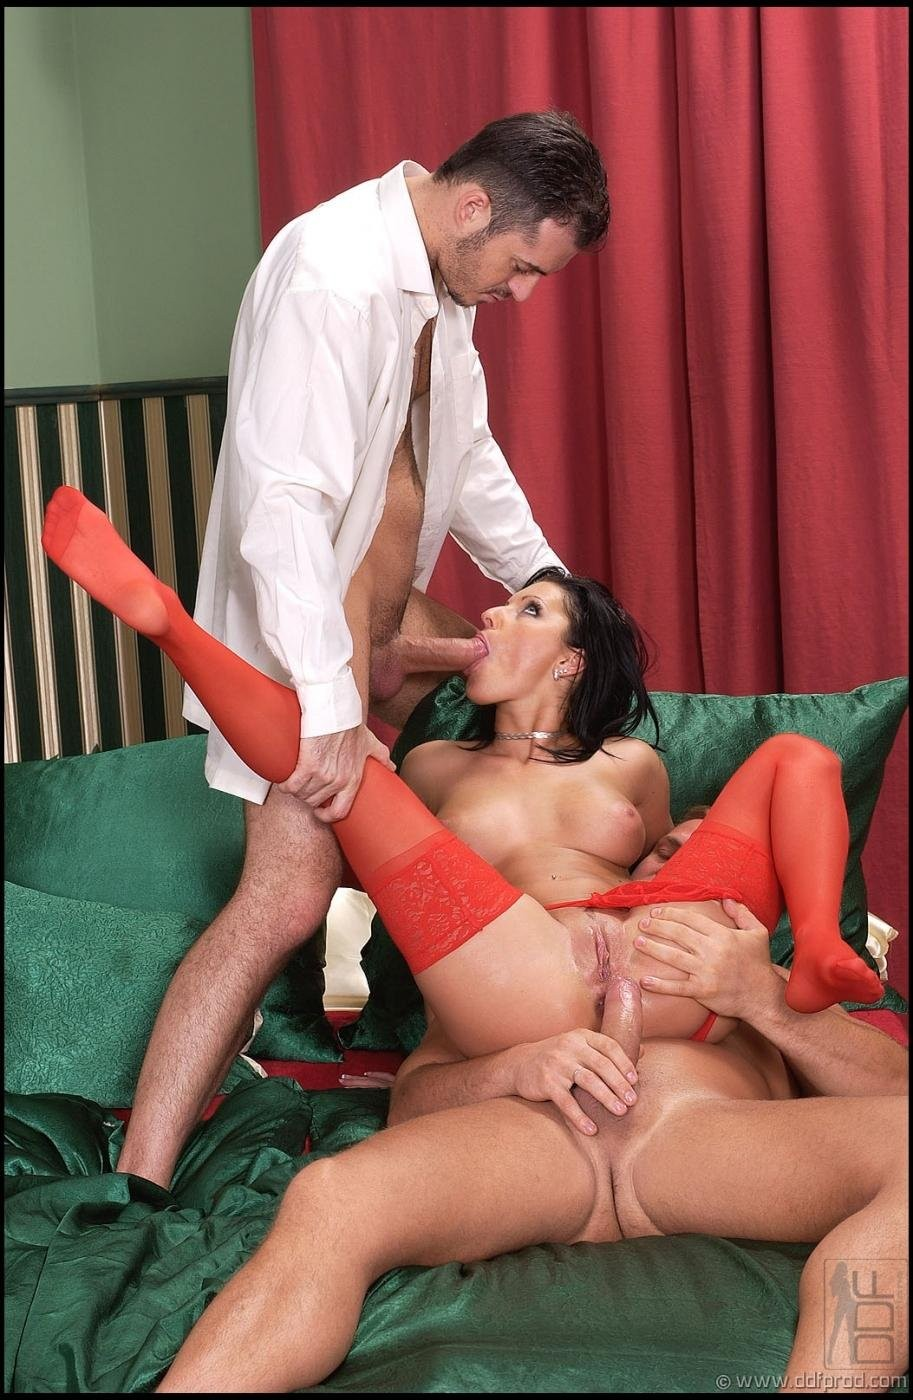 suprise anal threesome – Anal